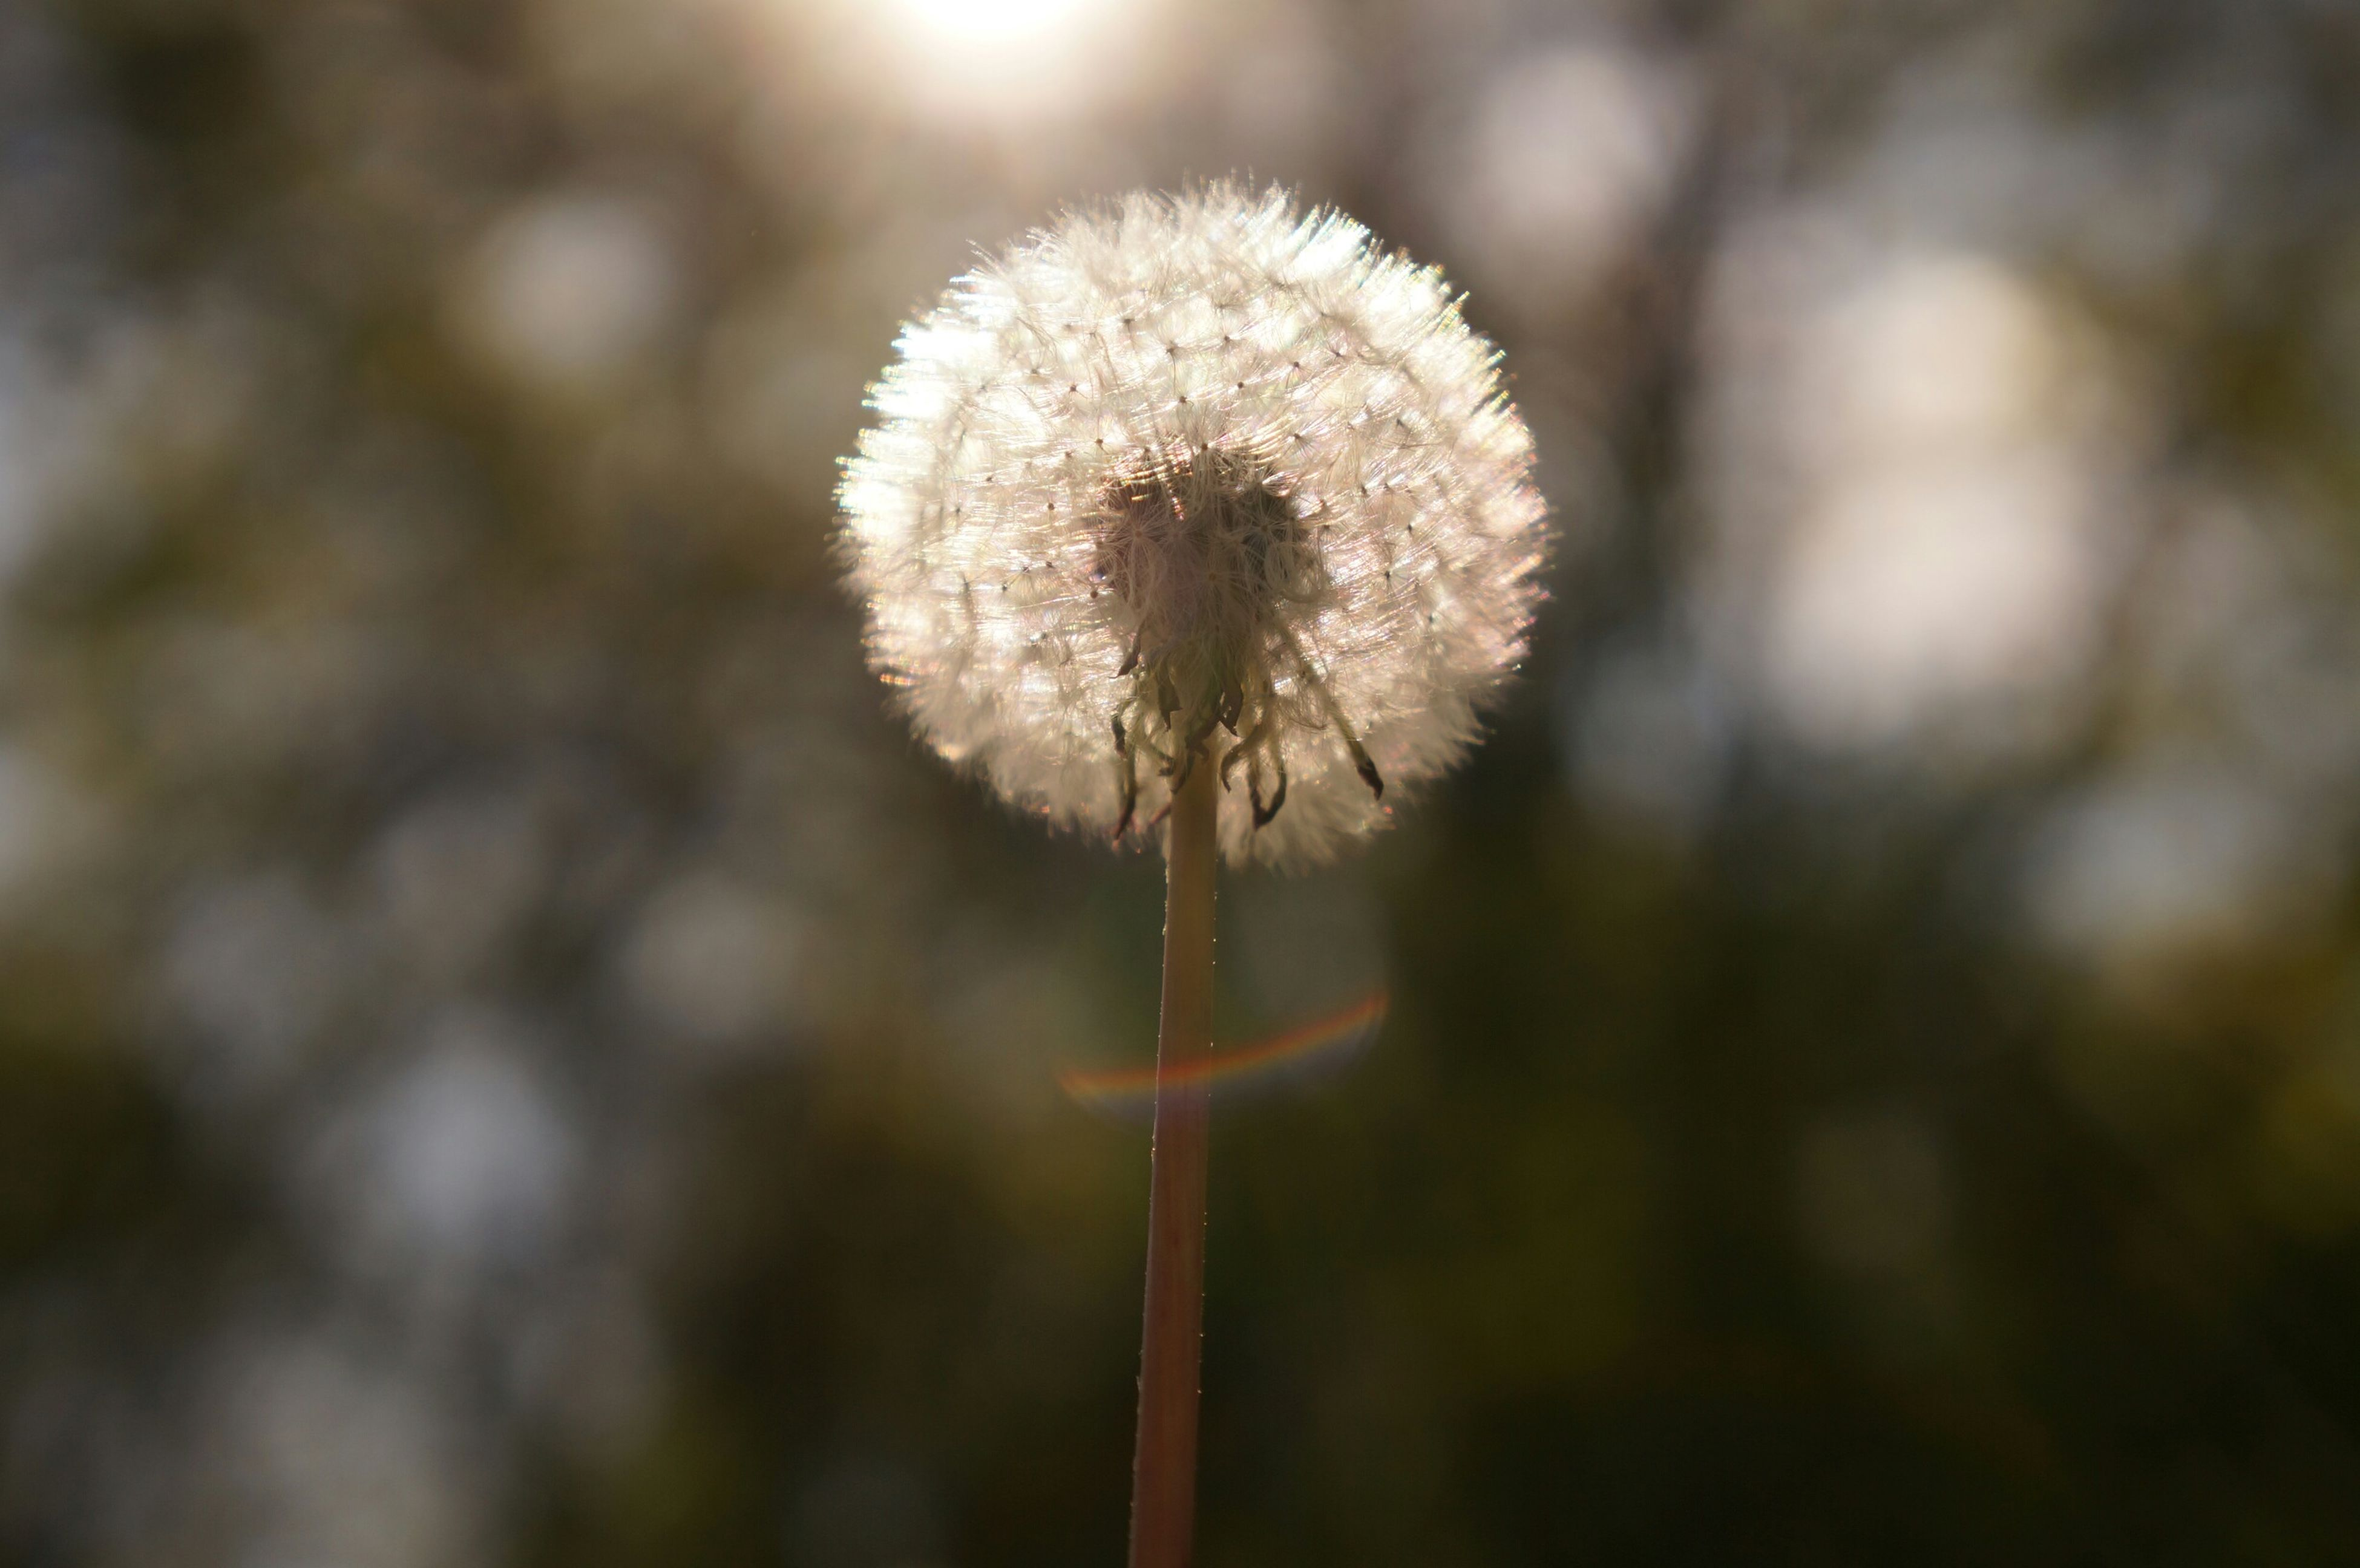 dandelion, flower, fragility, growth, flower head, freshness, focus on foreground, beauty in nature, close-up, nature, stem, single flower, softness, plant, uncultivated, white color, outdoors, wildflower, in bloom, no people